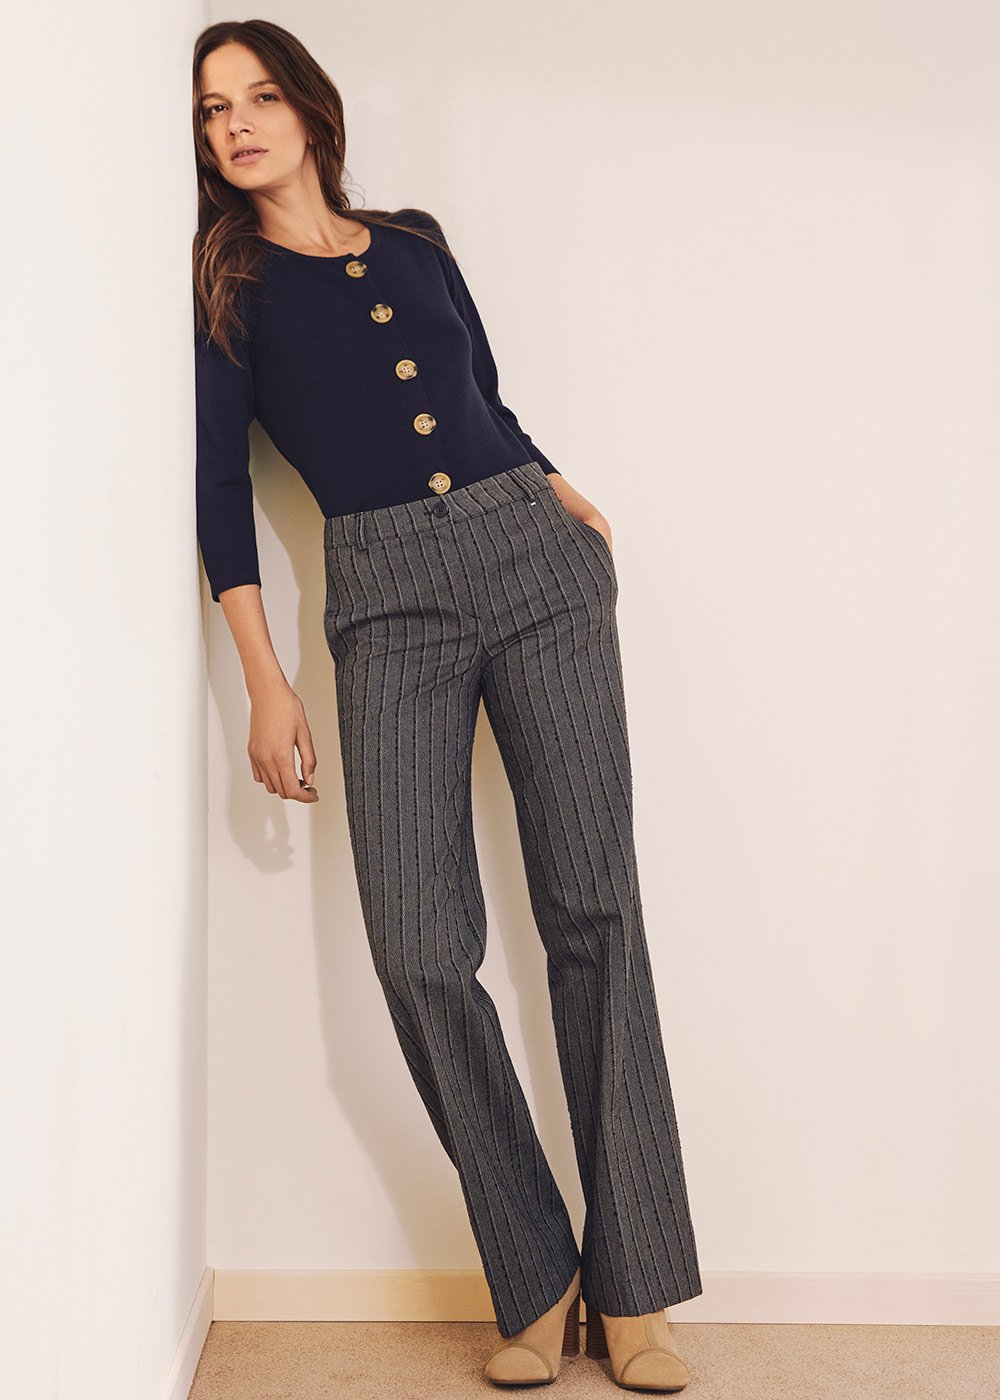 Clair poly-cotton trousers - Blue / Beige Stripes - Woman